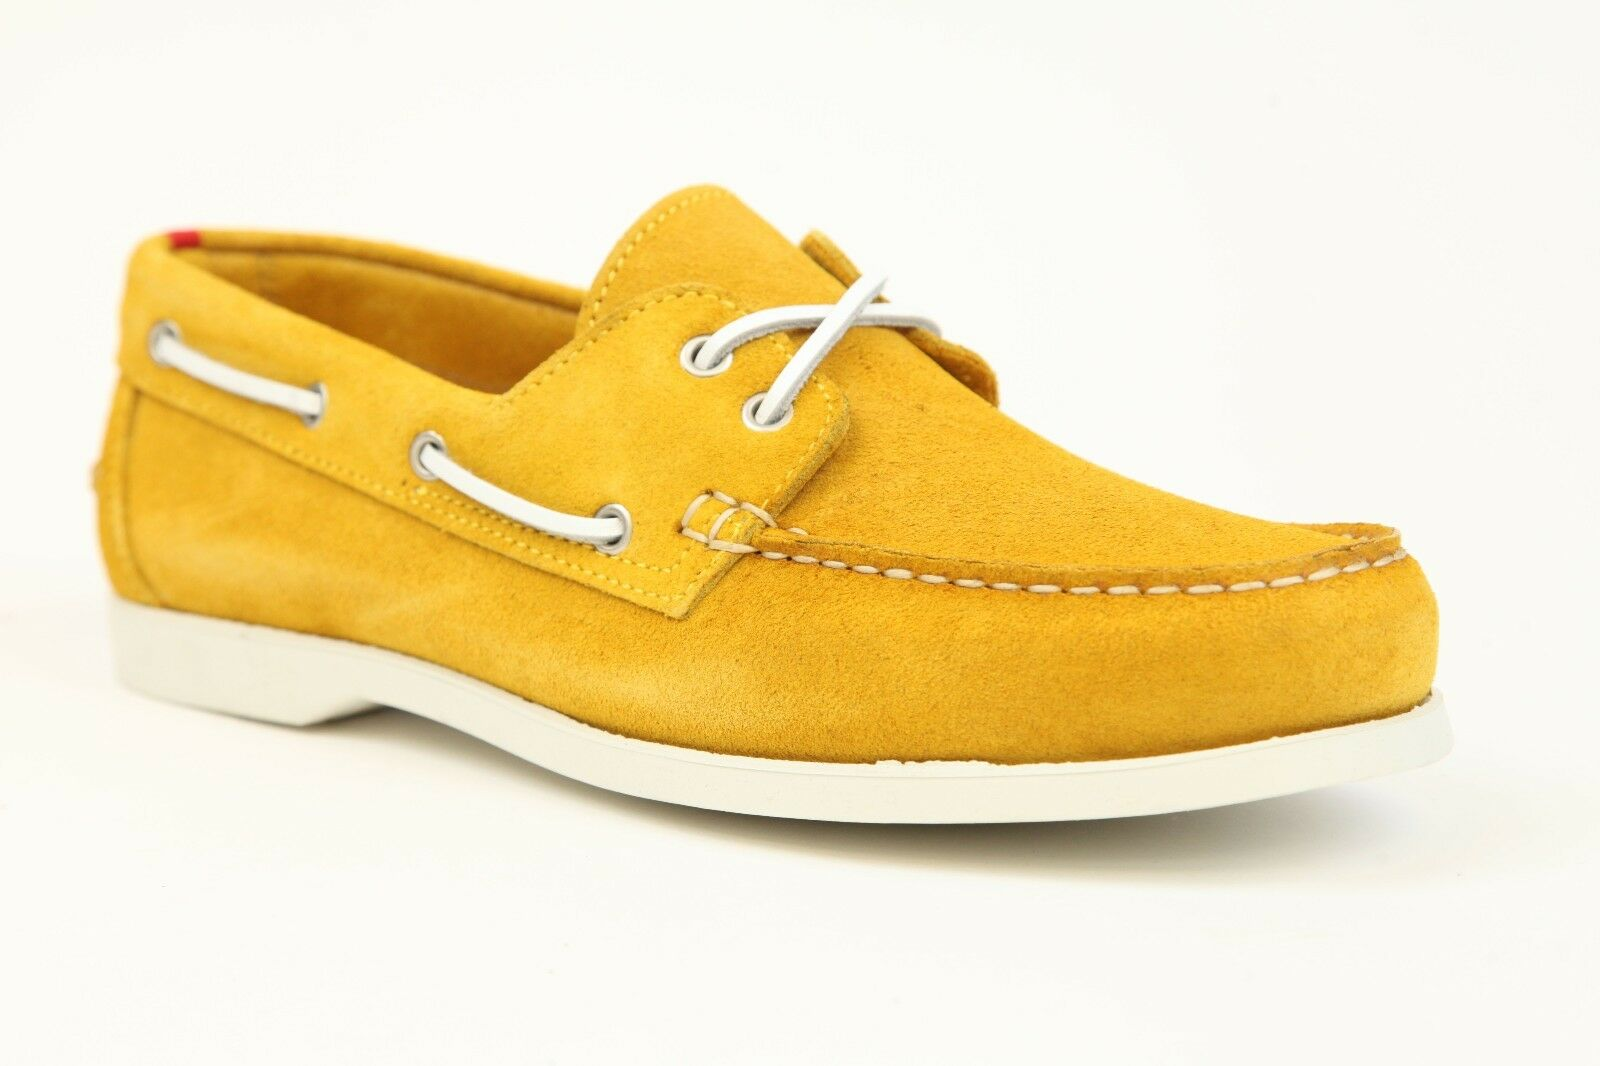 Kiton Yellow Suede Size Boat Shoes Size Suede 9 New a78b9b